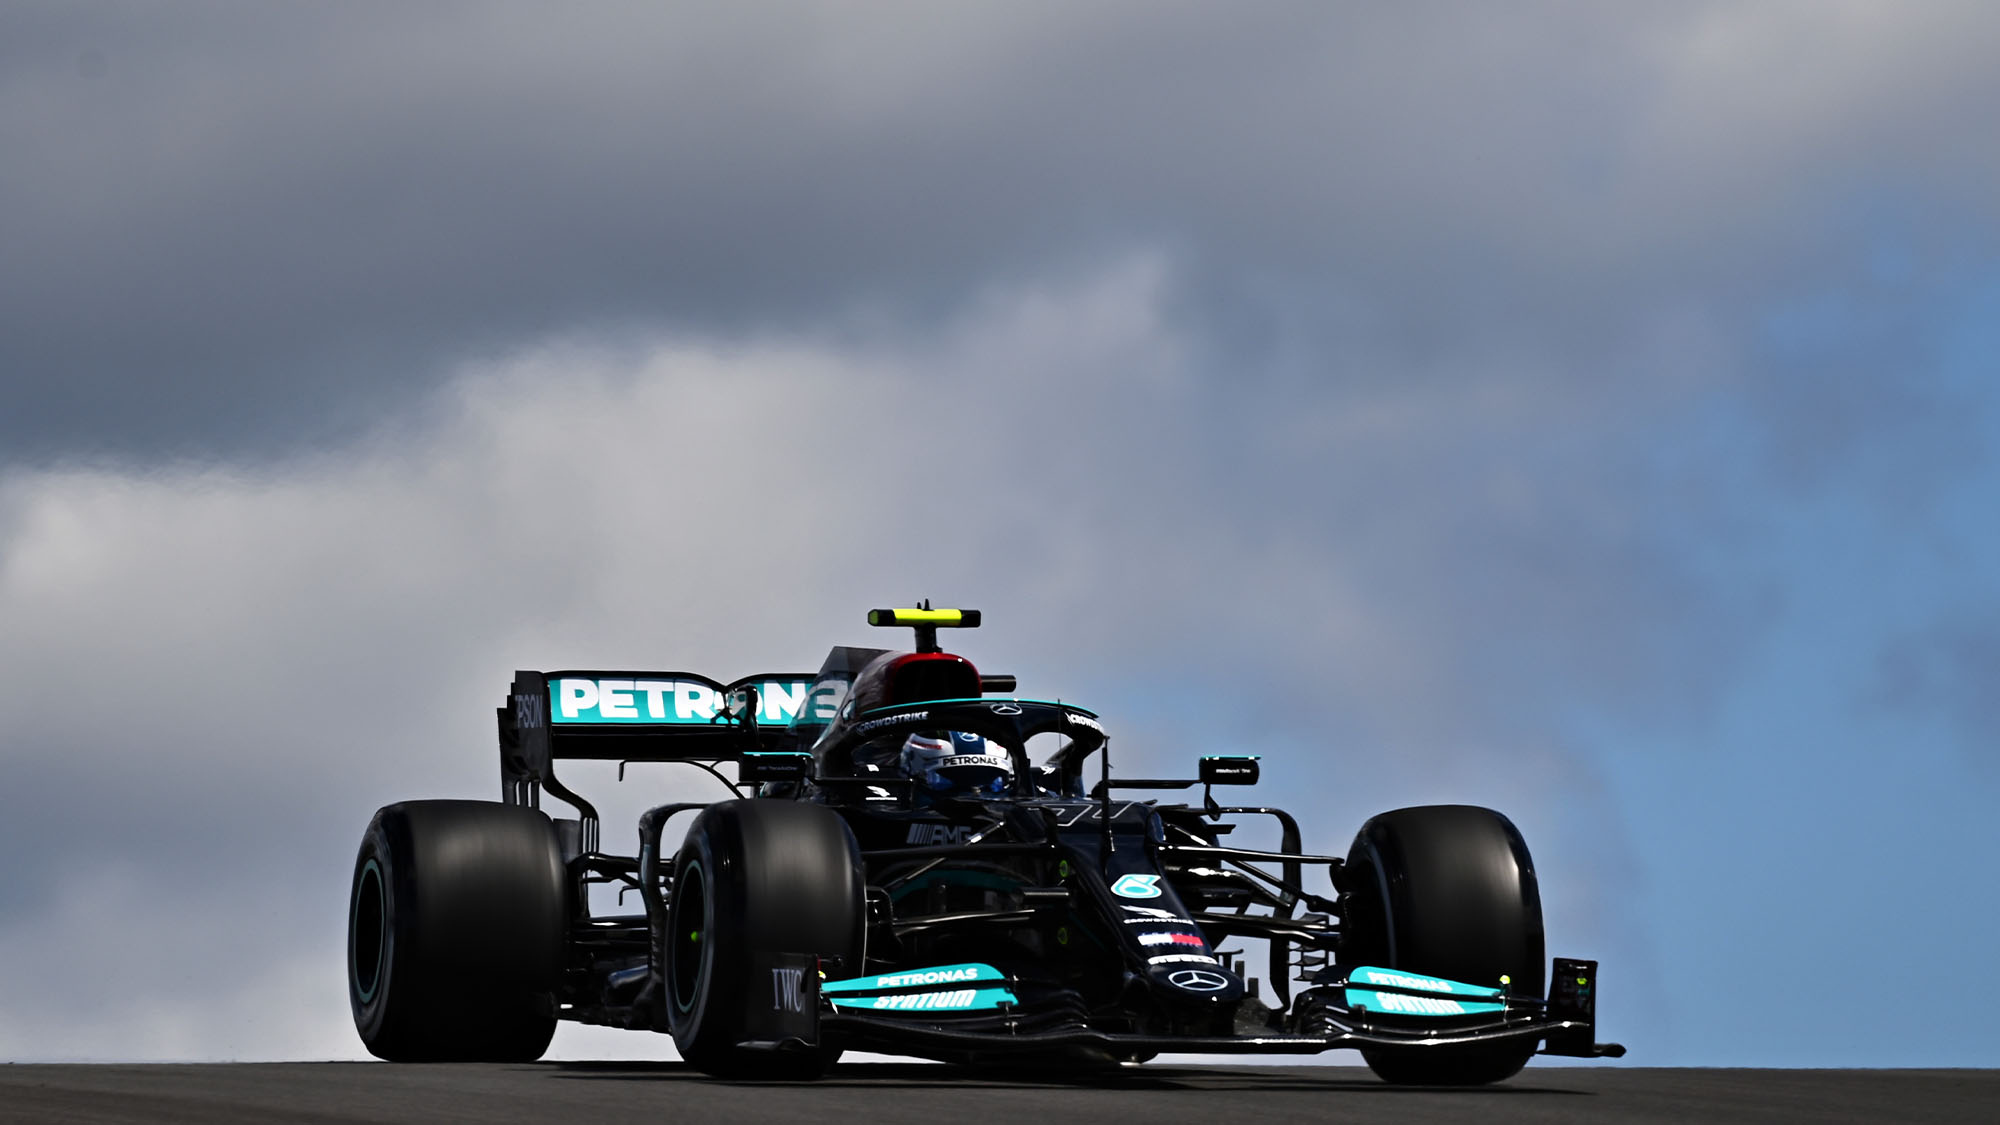 PORTIMAO, PORTUGAL - APRIL 30: Valtteri Bottas of Finland driving the (77) Mercedes AMG Petronas F1 Team Mercedes W12 during practice ahead of the F1 Grand Prix of Portugal at Autodromo Internacional Do Algarve on April 30, 2021 in Portimao, Portugal. (Photo by Clive Mason - Formula 1/Formula 1 via Getty Images)